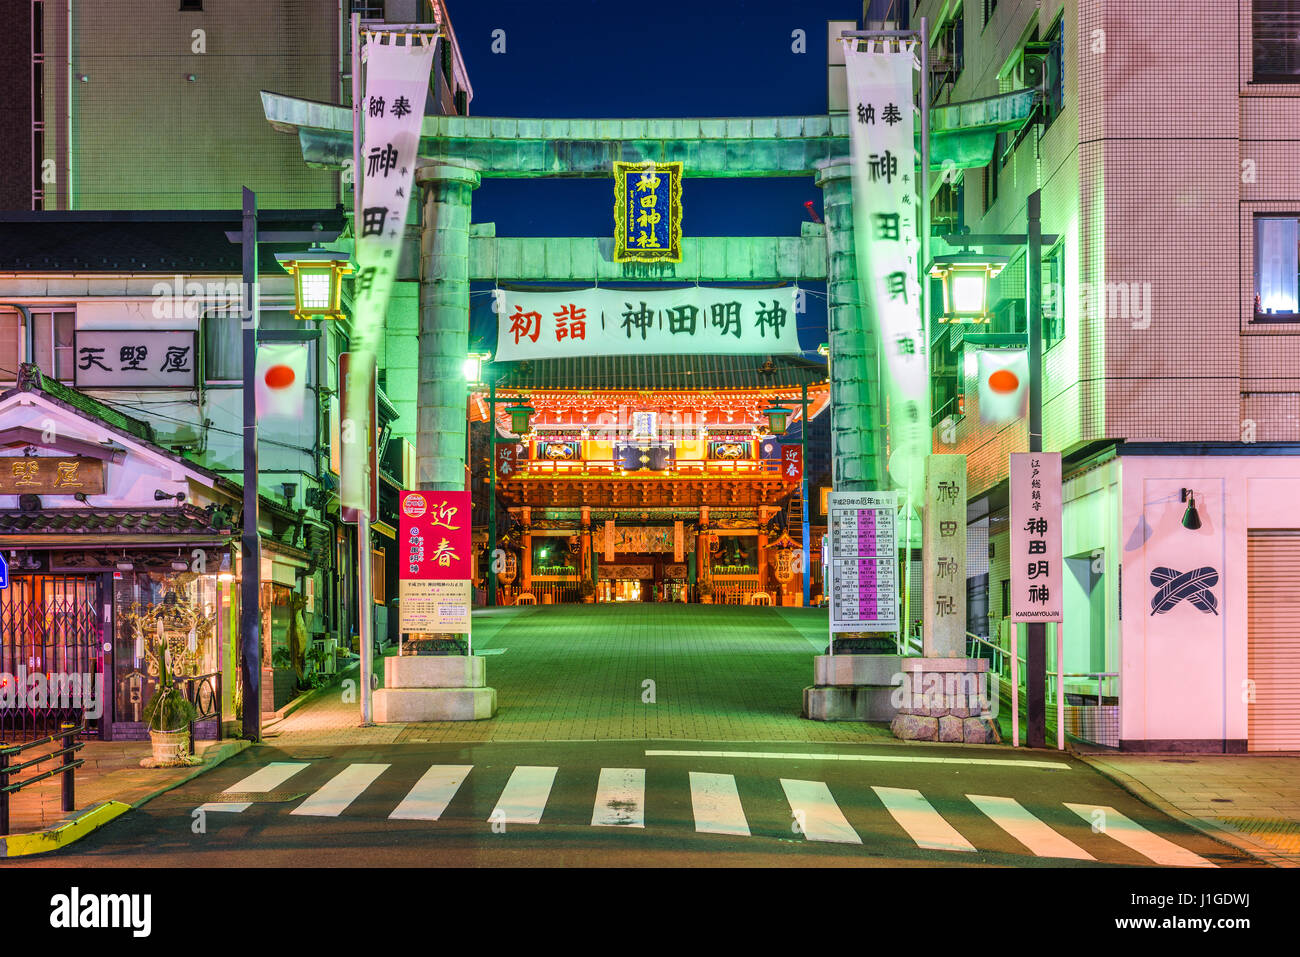 January 13, 2017: Kanda Shrine at dusk. The shrine's history dates to the year 730. - Stock Image